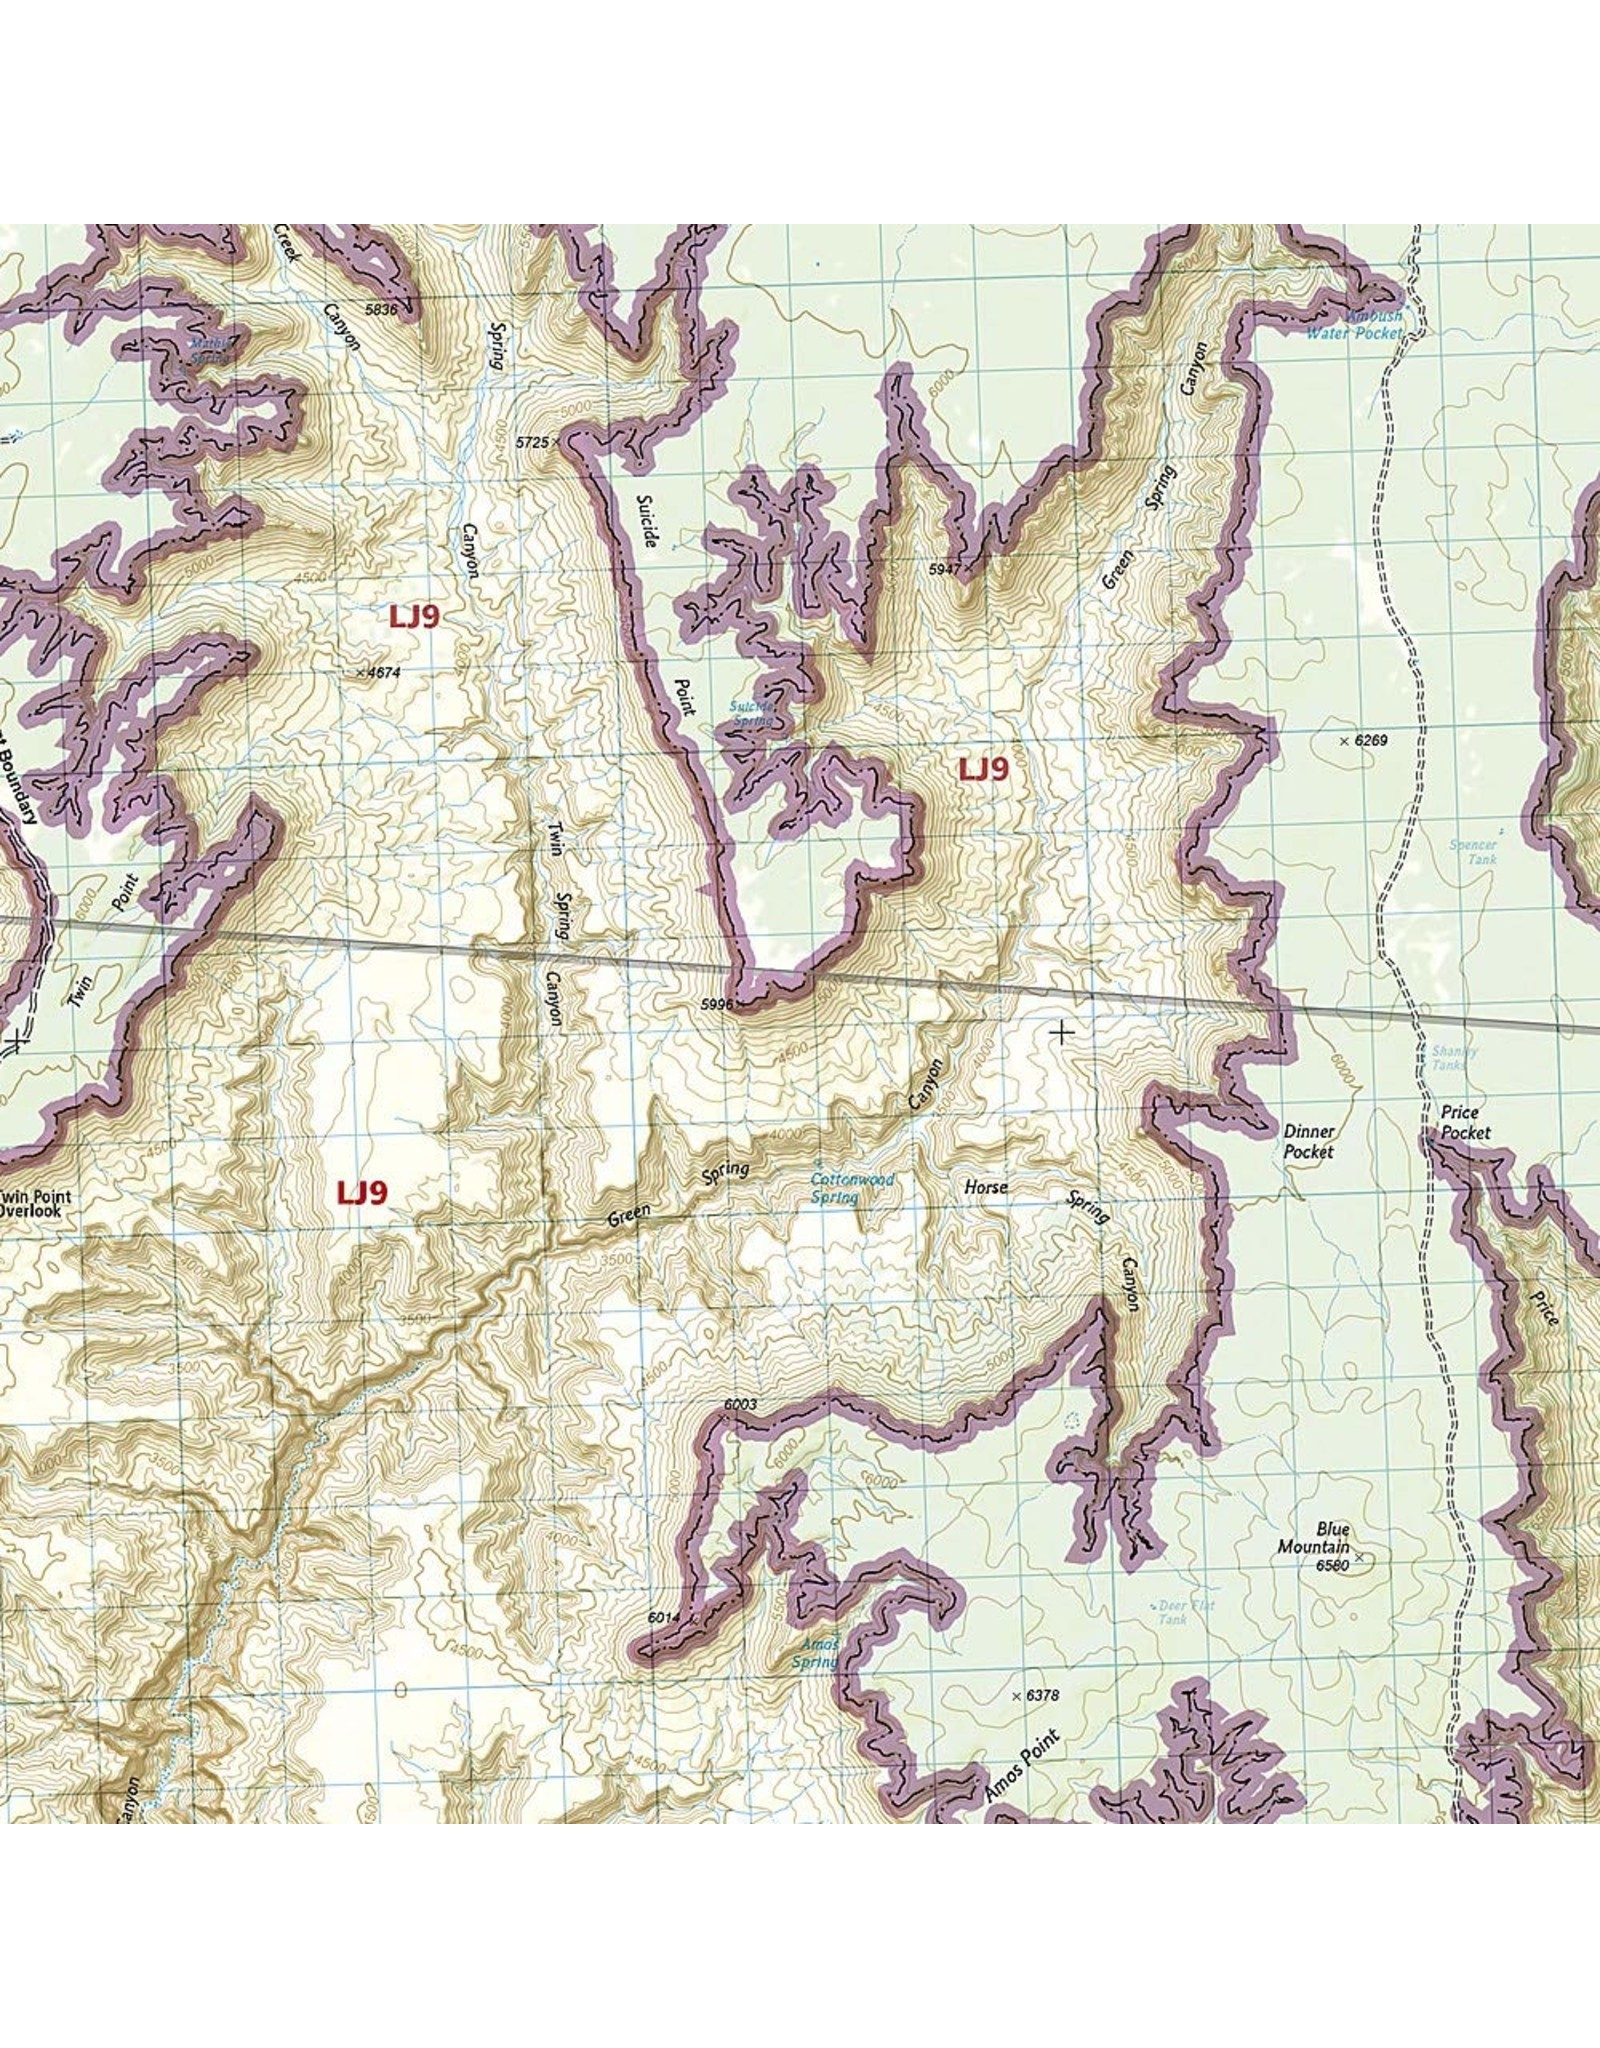 Grand Canyon West [Grand Canyon National Park] (National Geographic Trails Illustrated Map) (National Geographic Trails Illustrated Map, 263) Map – Folded Map